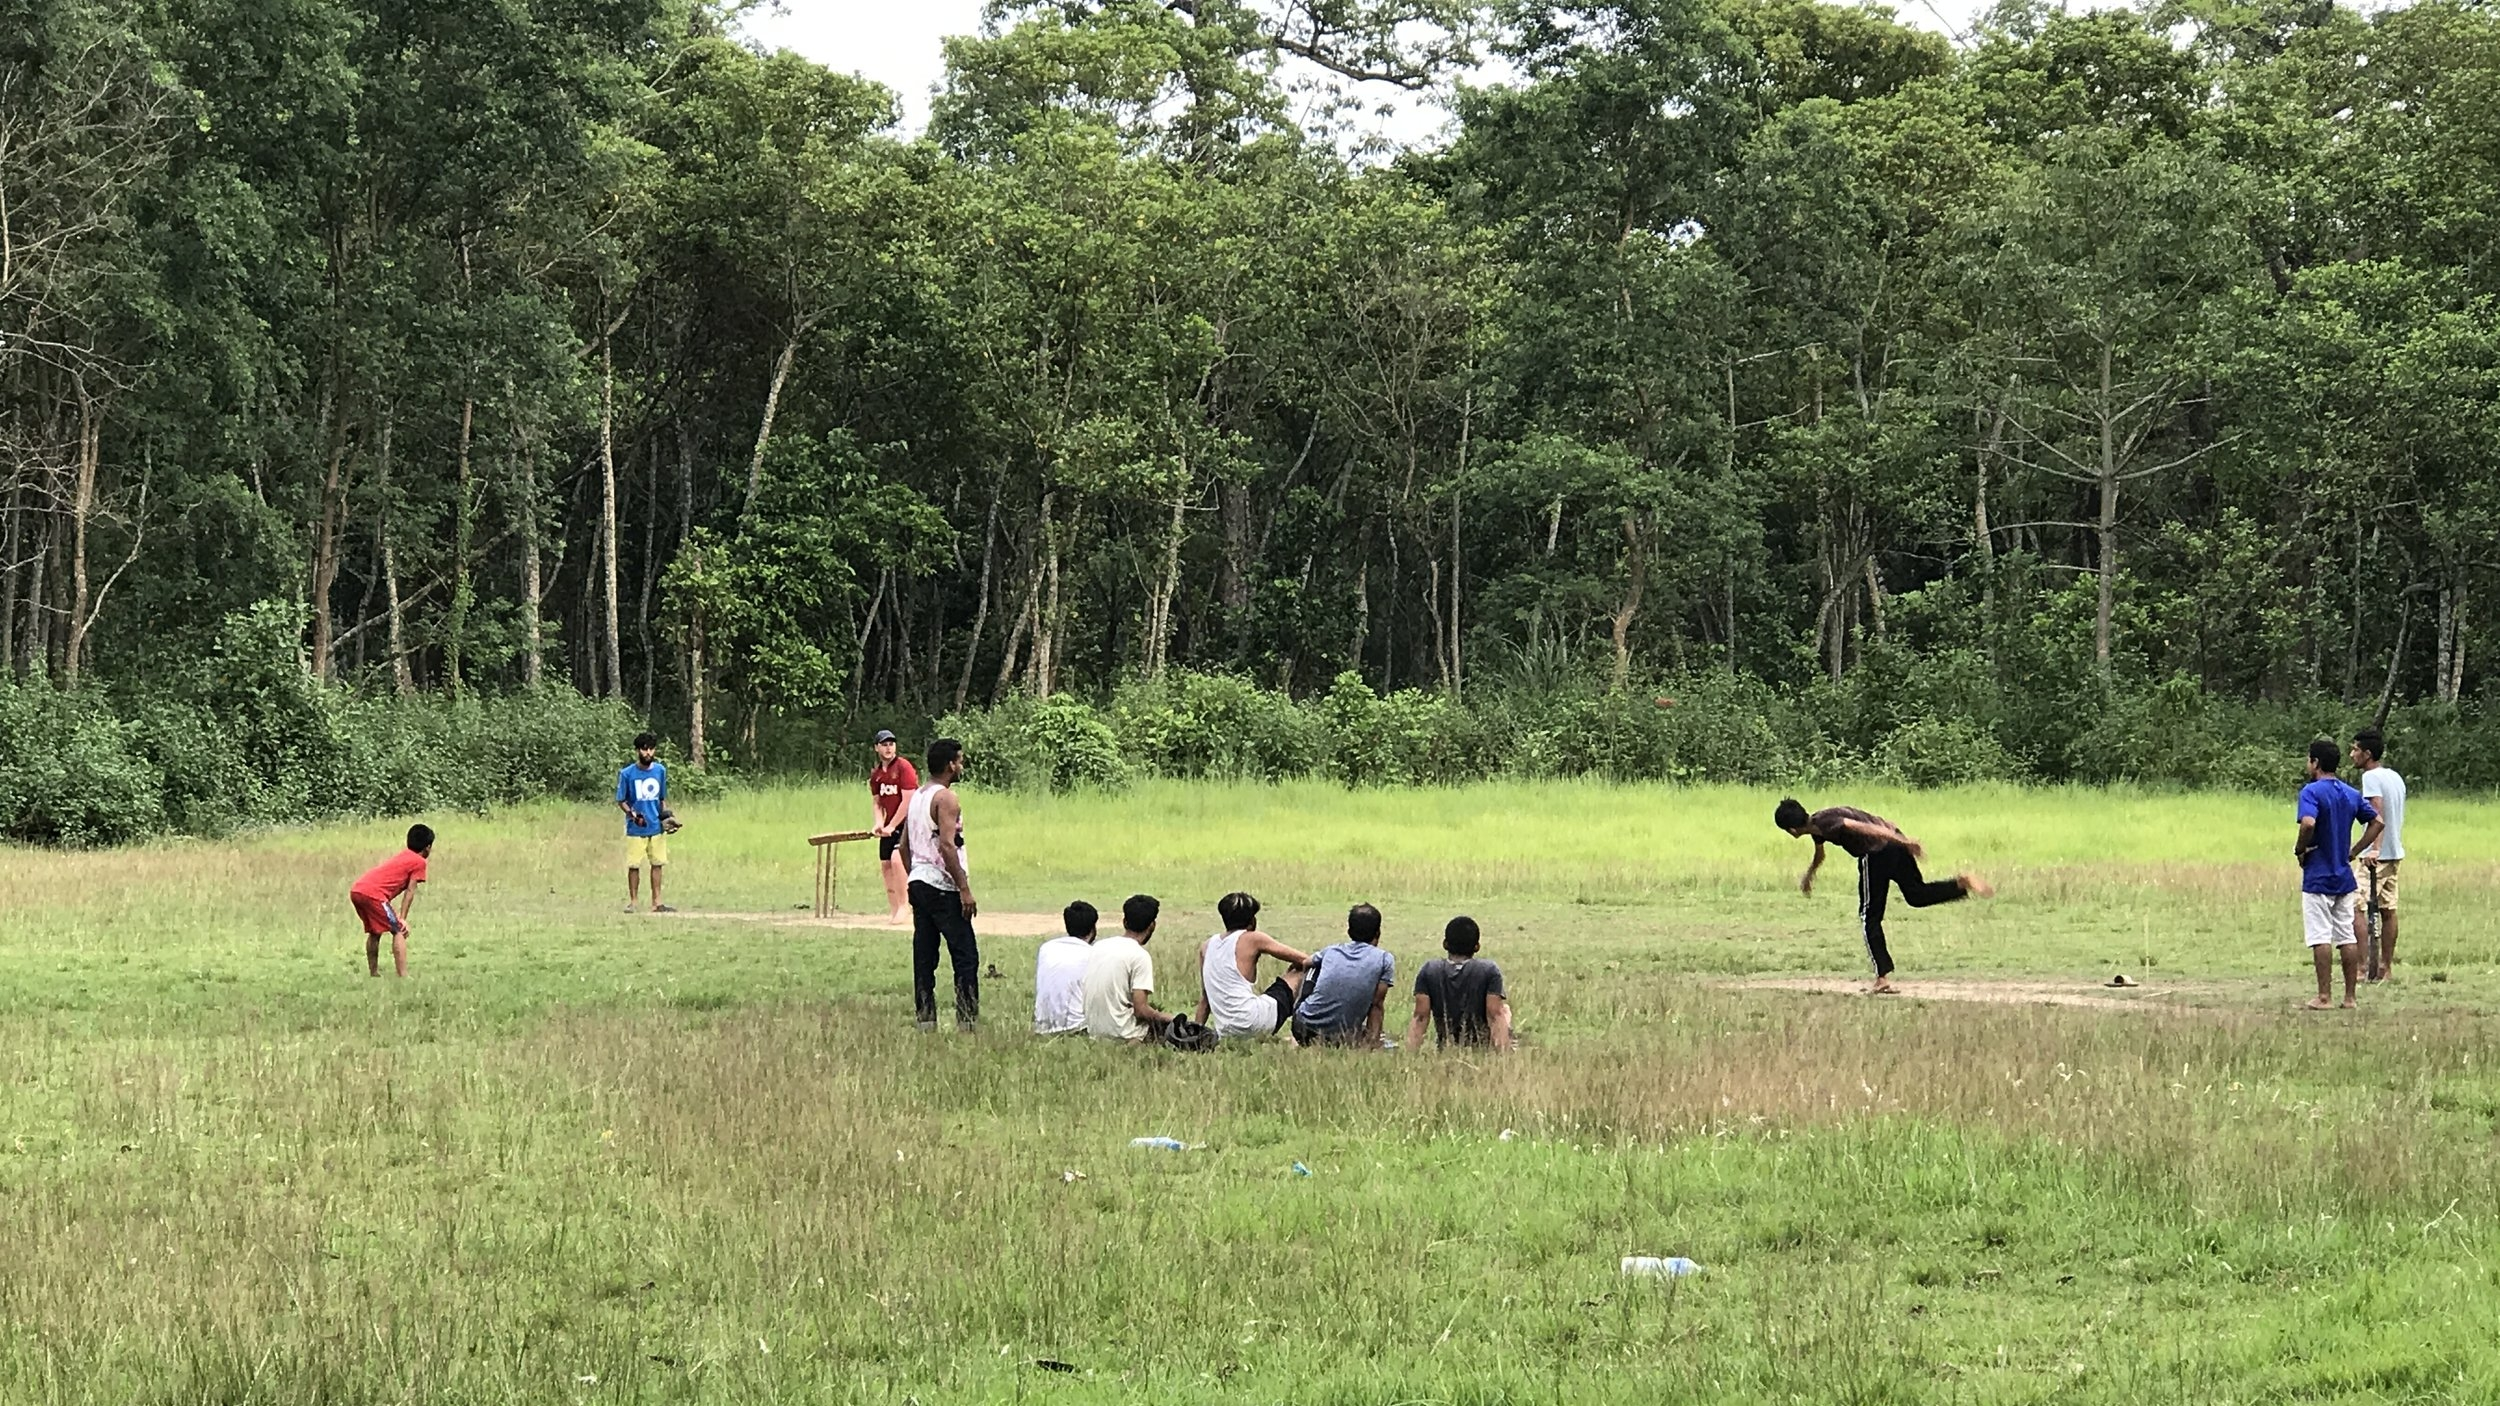 a session of backyard cricket in the sauraha rainforest with the local kids